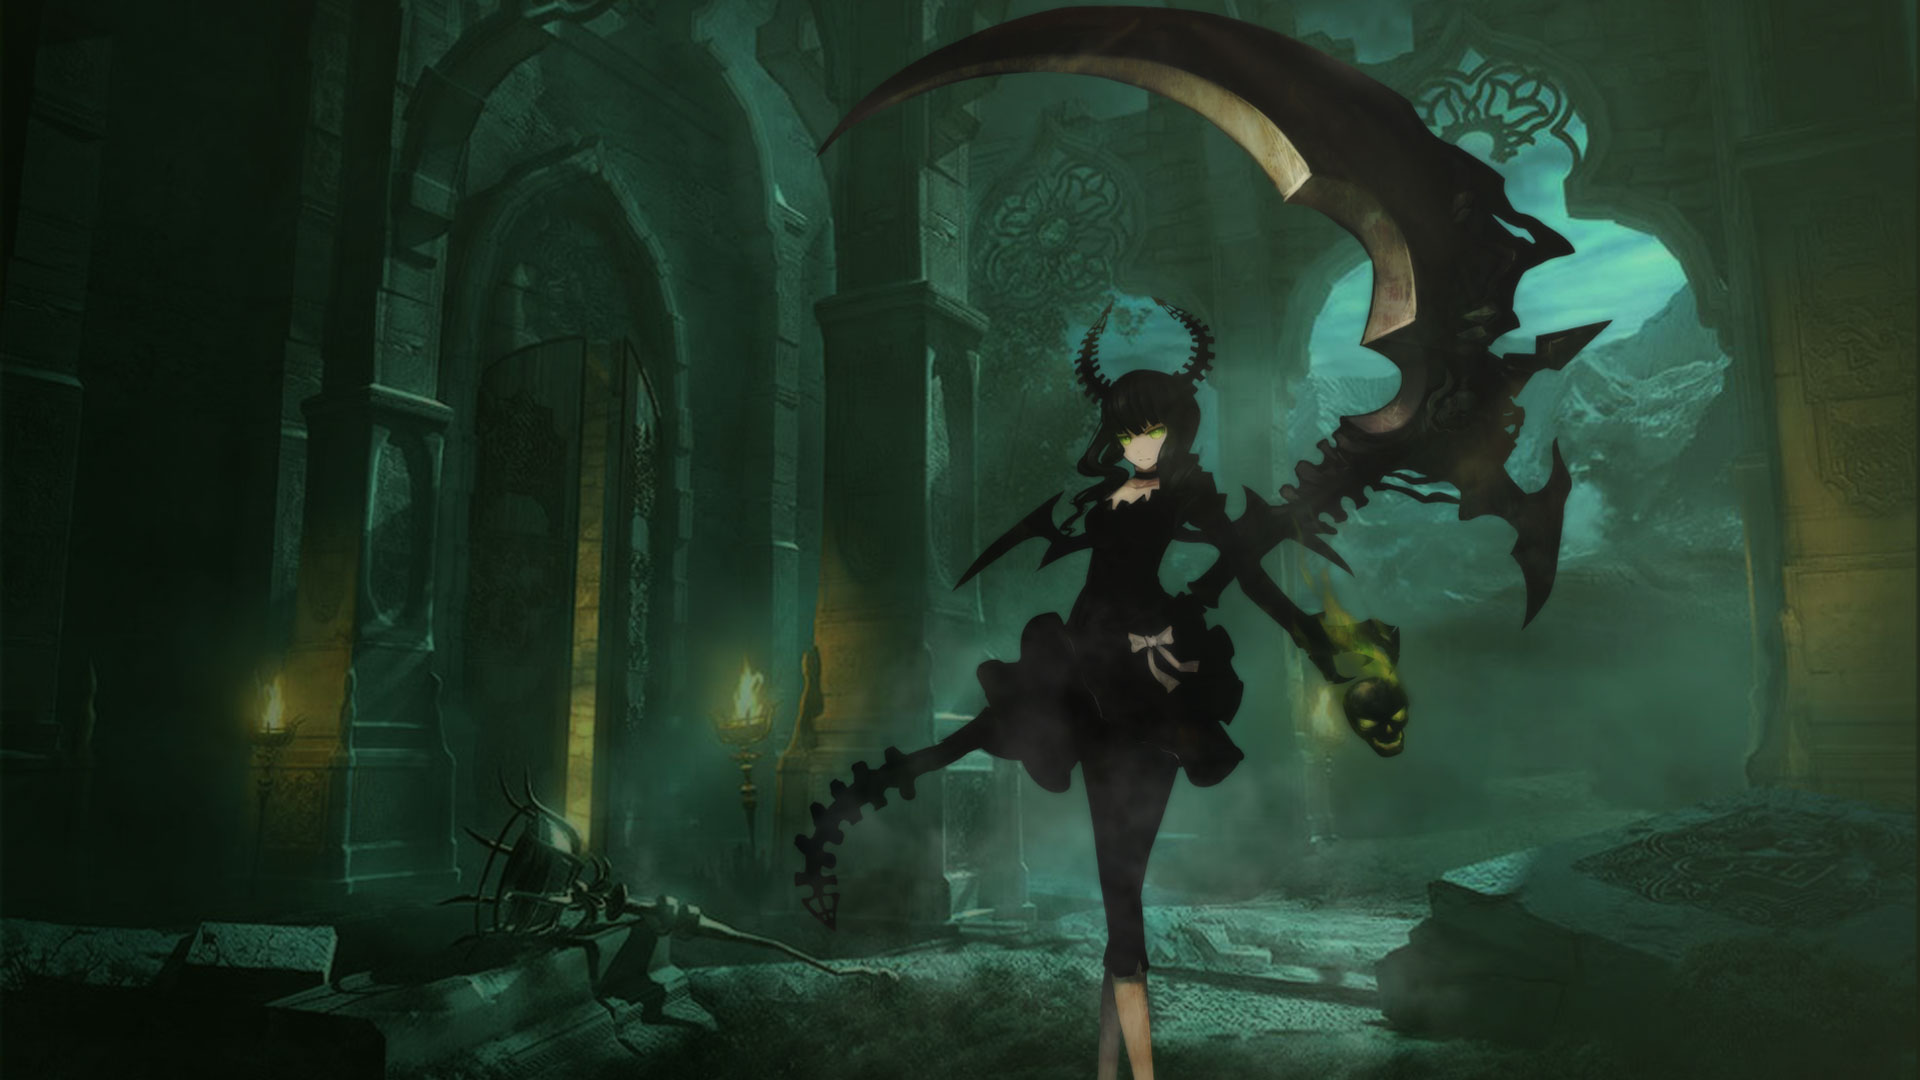 Pictures of anime wallpapers 16 wallpapers adorable wallpapers voltagebd Choice Image